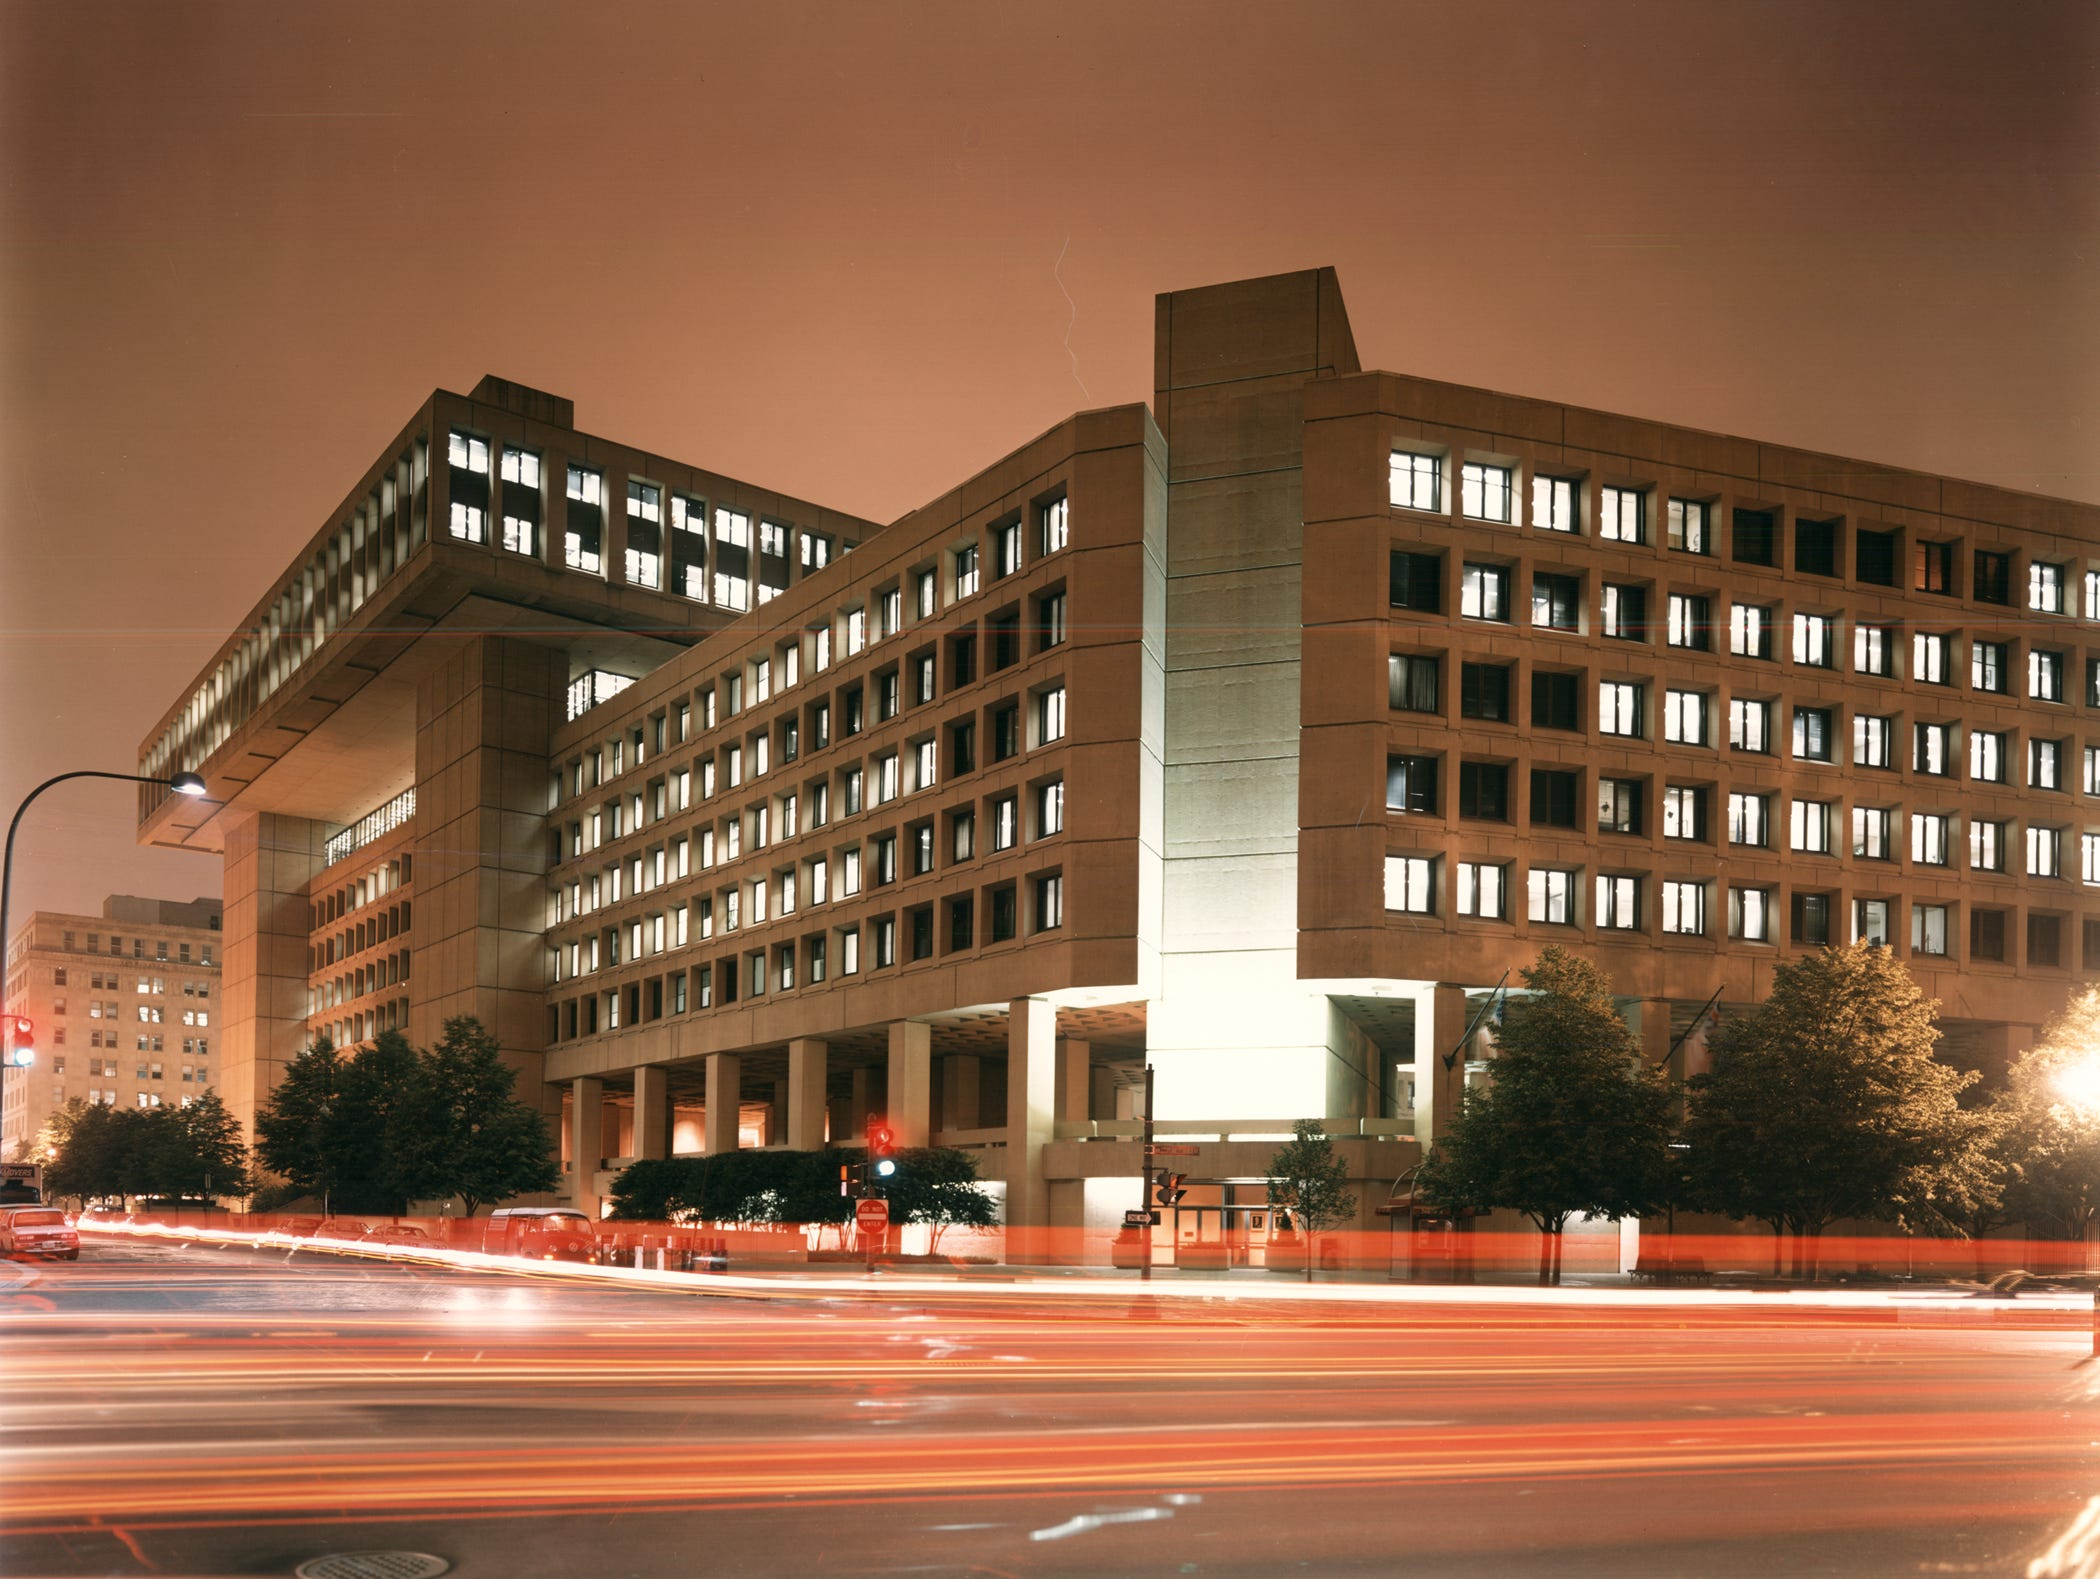 The FBI's headquarters at night.